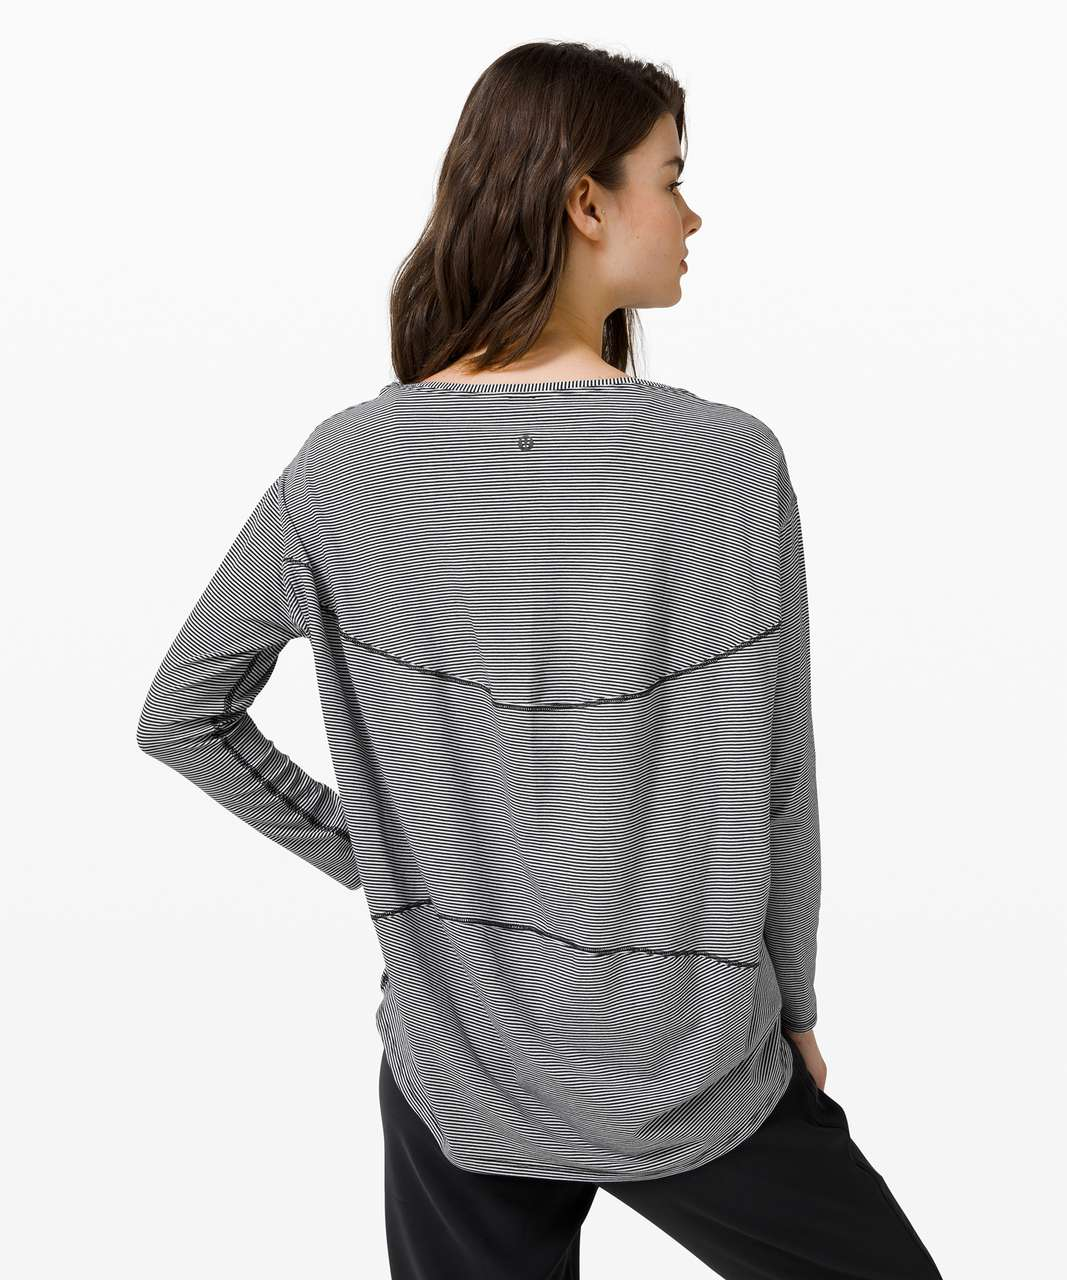 Lululemon Back In Action Long Sleeve - Tonka Stripe Black White